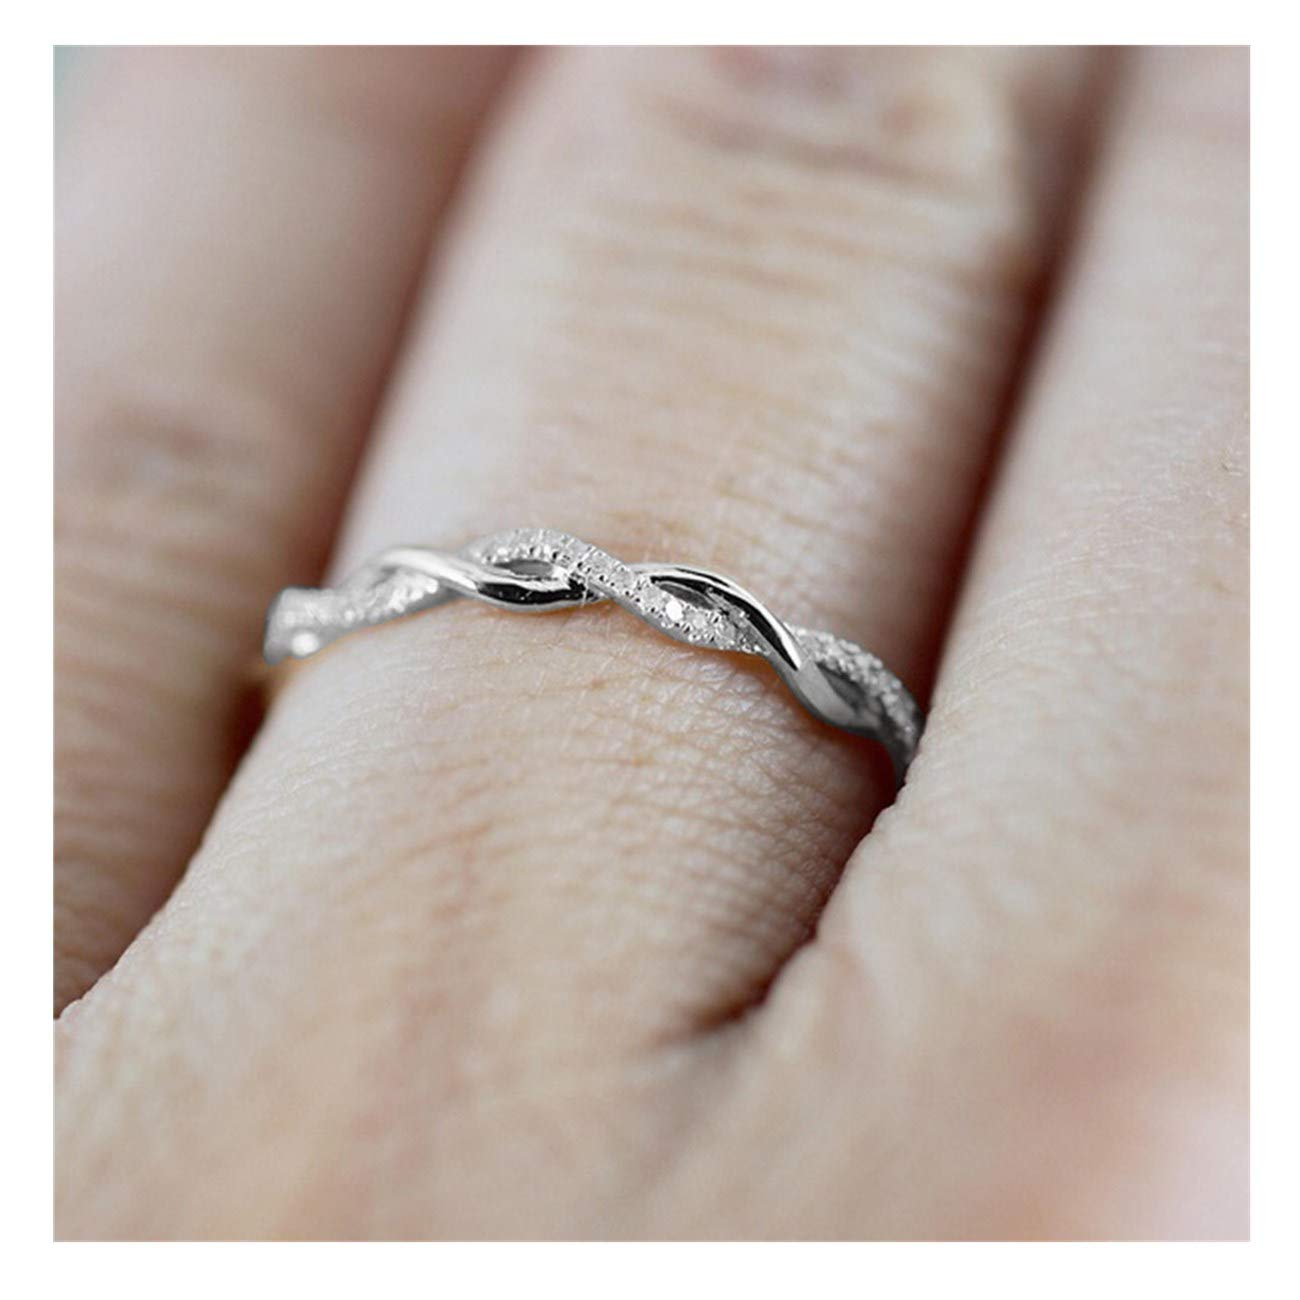 Challyhope Chic Twisted Shape Micro-Inserts Tiny Diamond Engagement Rings Stacking Matching Band Anniversary Ring (Silver, 9)